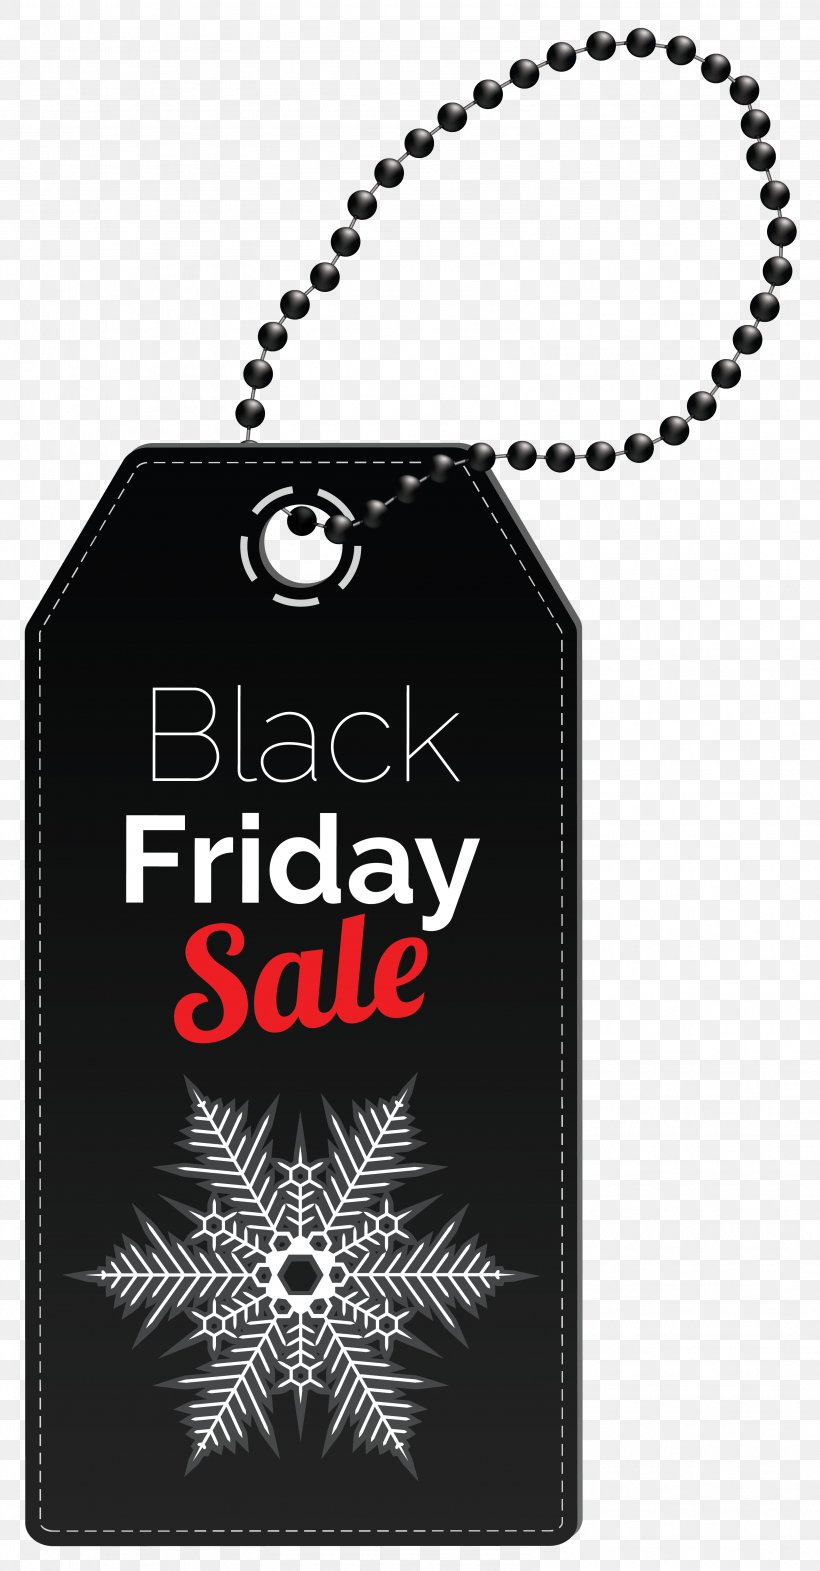 Black Friday Sale Clip Art, PNG, 3174x6081px, Black Friday, Black, Black And White, Brand, Discounts And Allowances Download Free